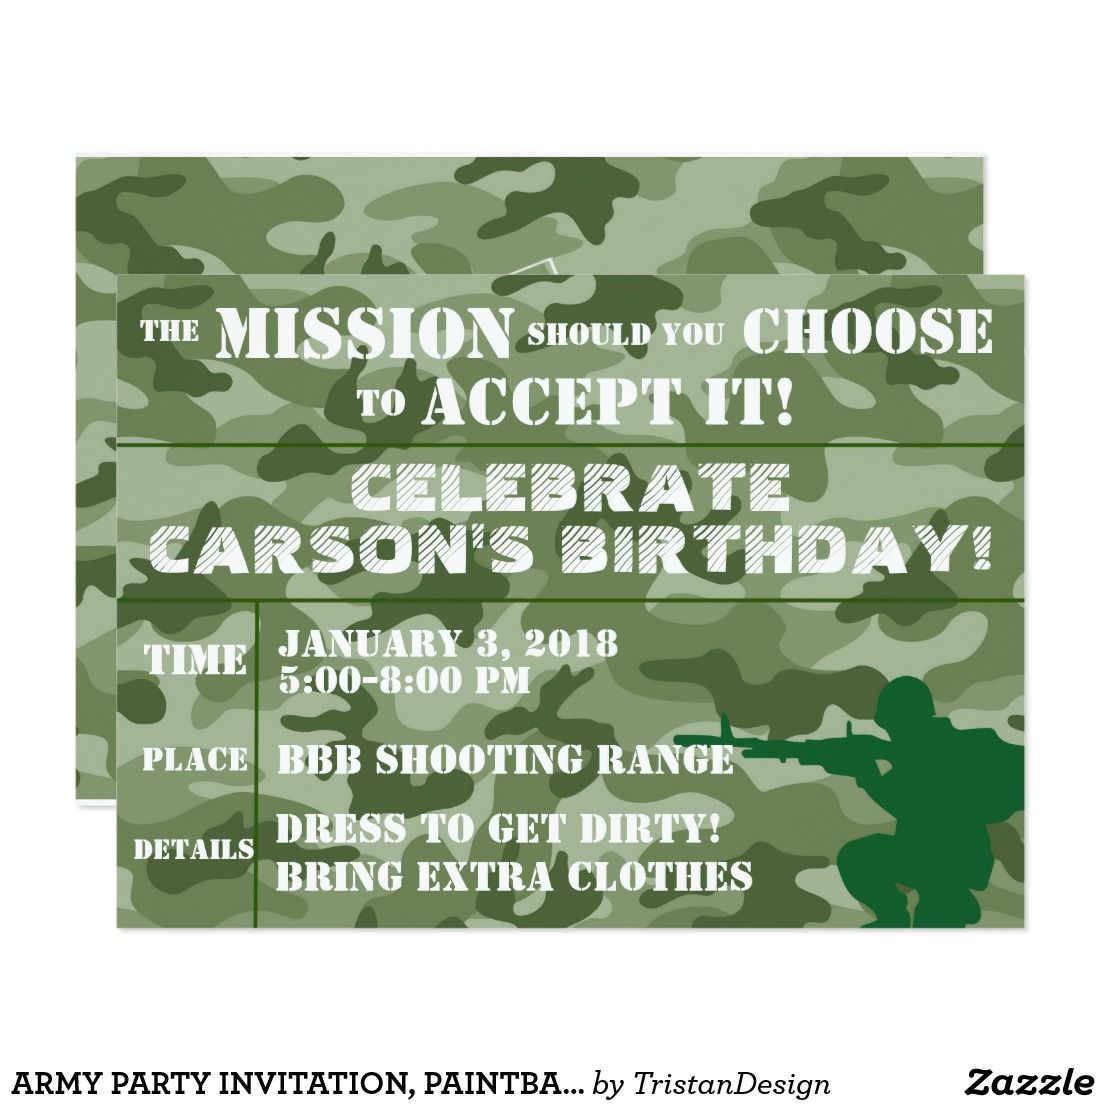 Army party invitation, paintball party invitation | Army party and ...